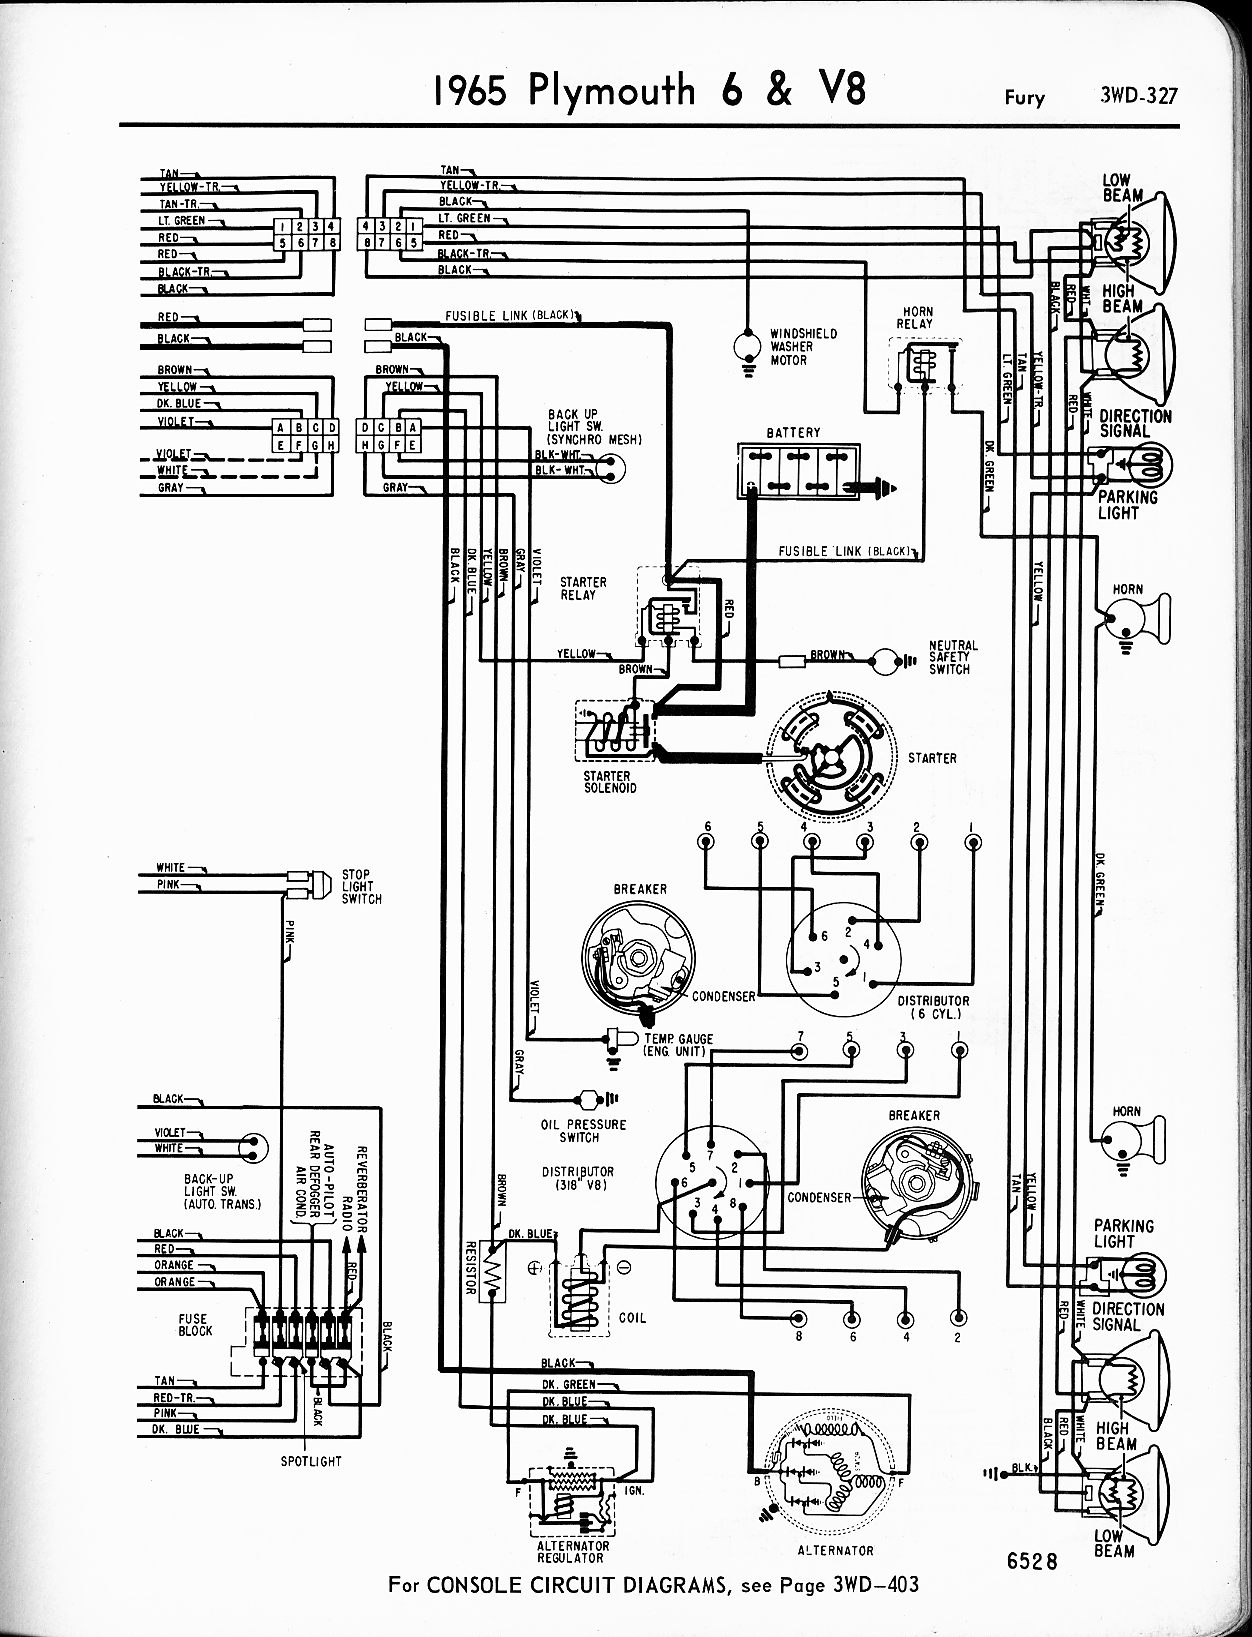 1964 Chevy Truck Wire Diagram For Horn On Simple Guide About 66 C10 Wiring Diagrams 1966 Plymouth Rh Medijagmbbs Com